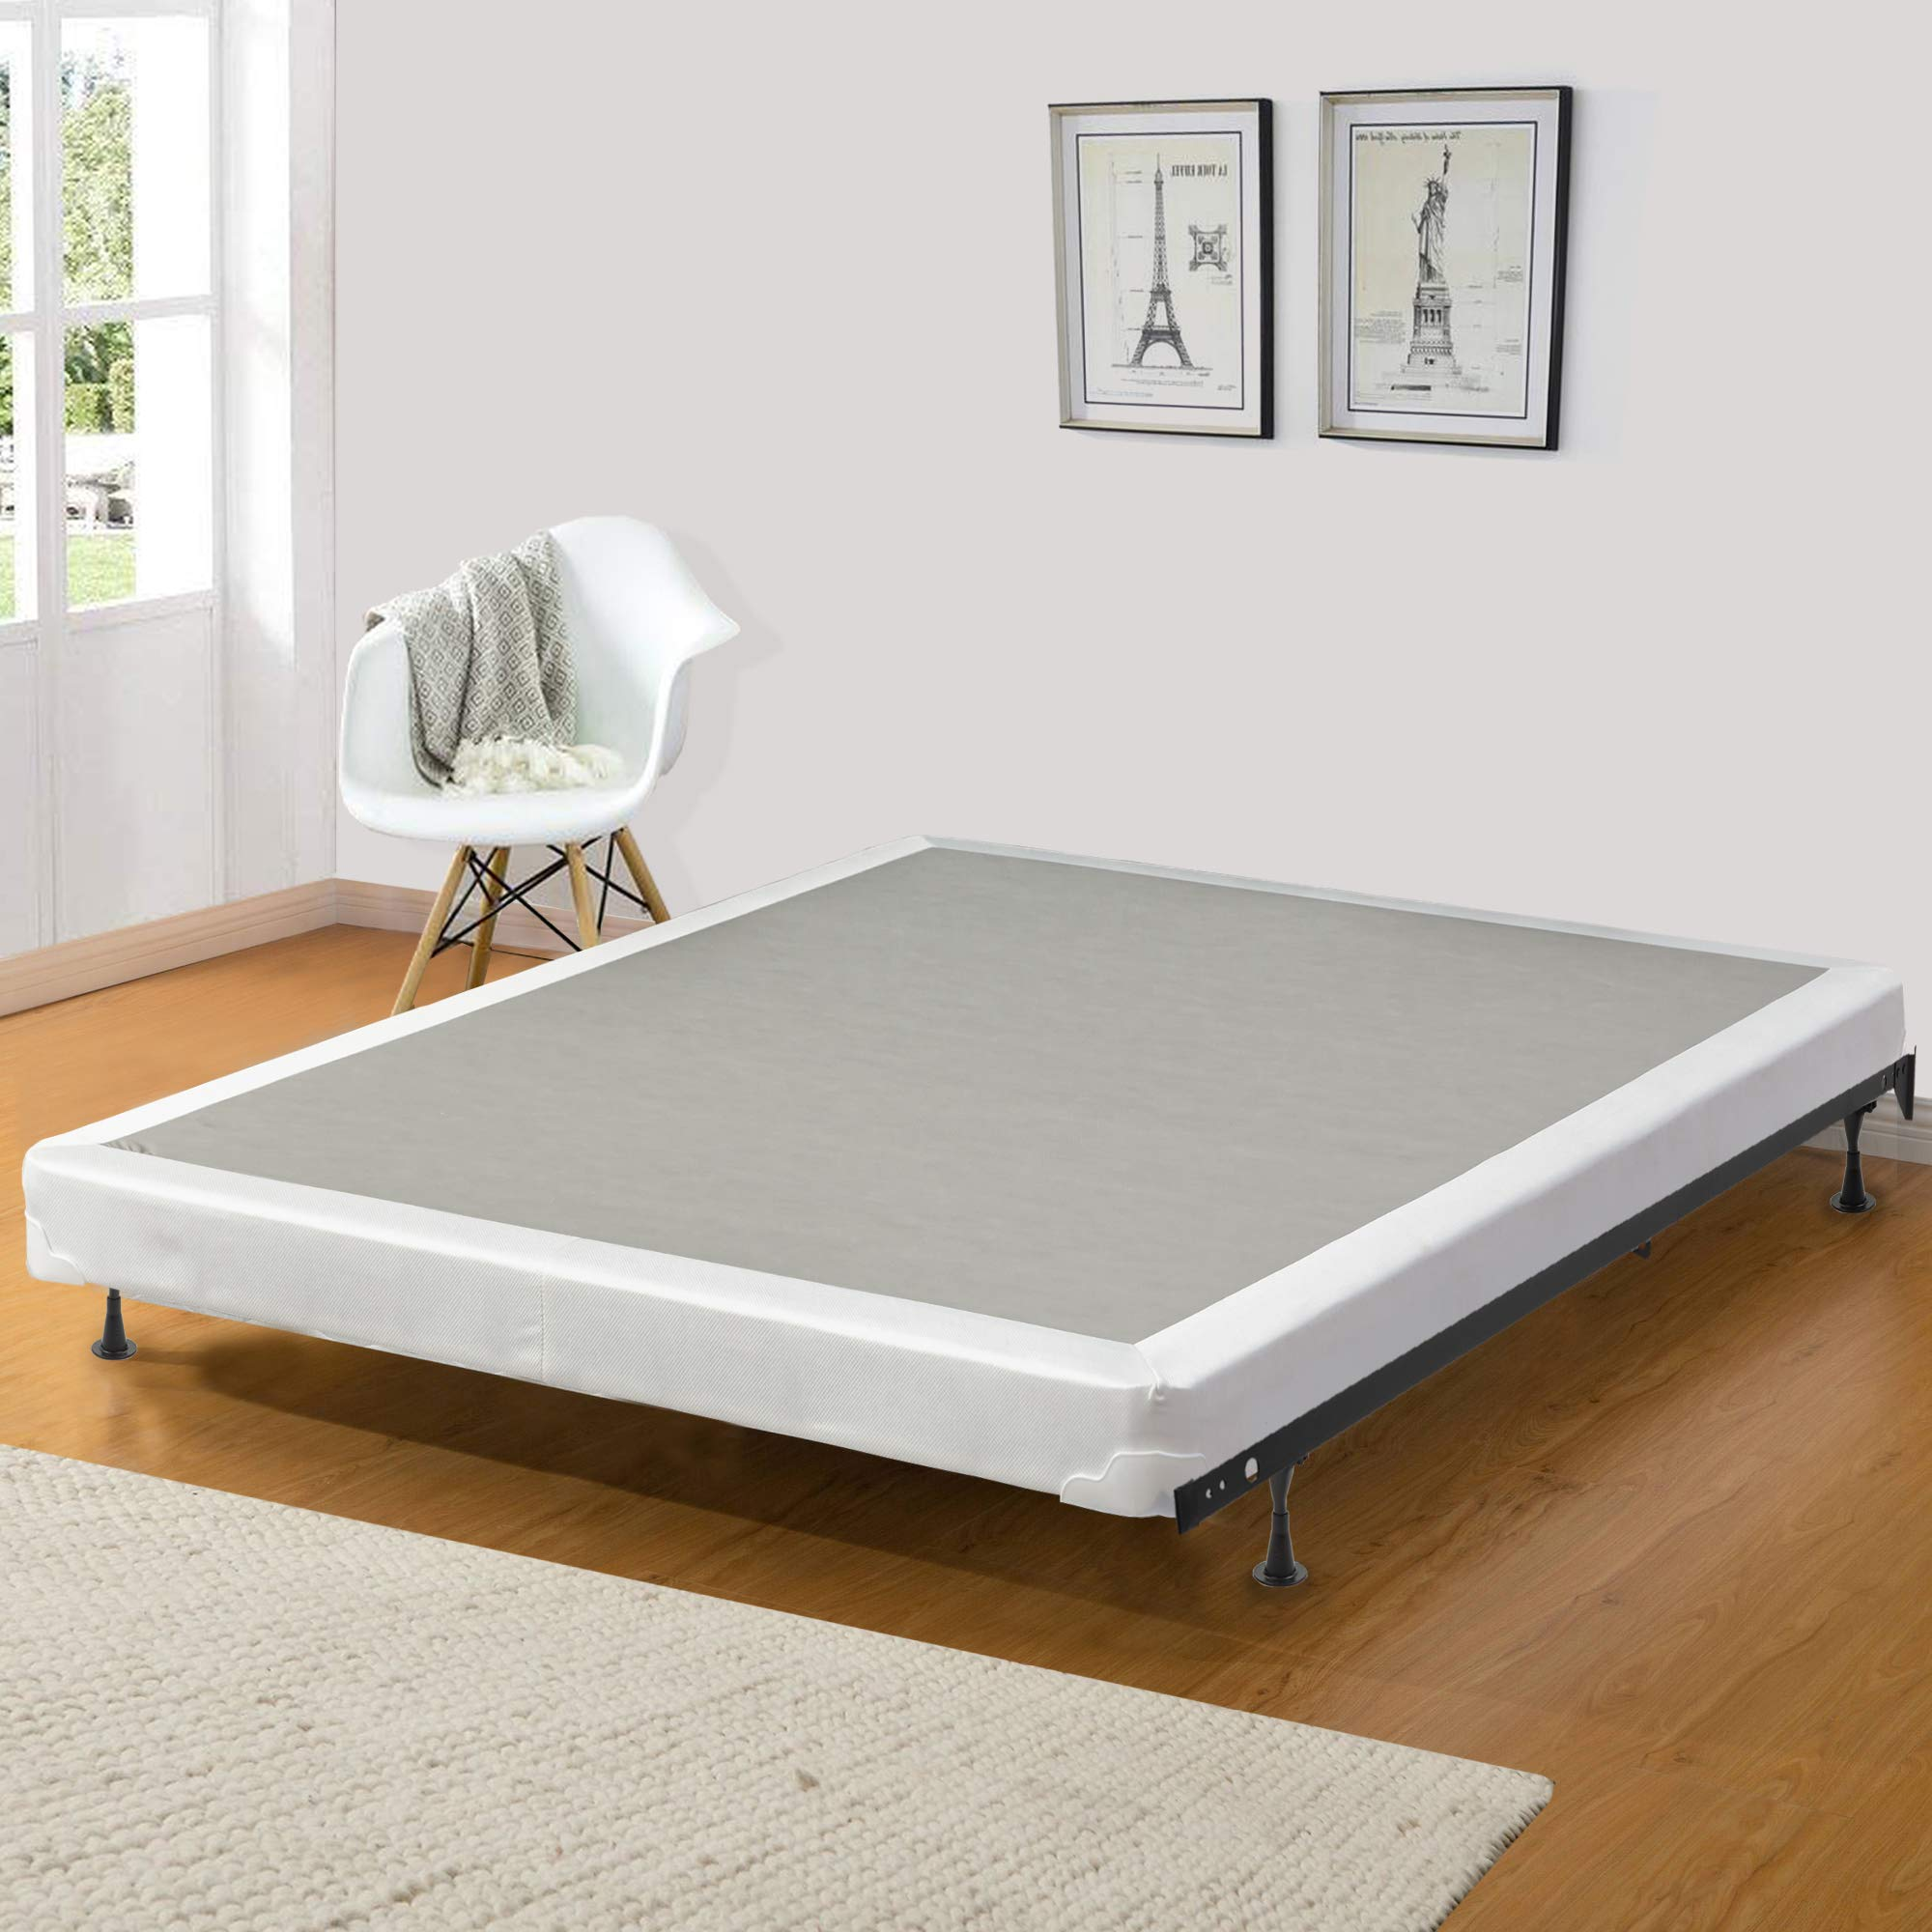 Continental Sleep Fully Assembled 4-inch Queen Box Spring For Mattress,Fifth Ave Collection